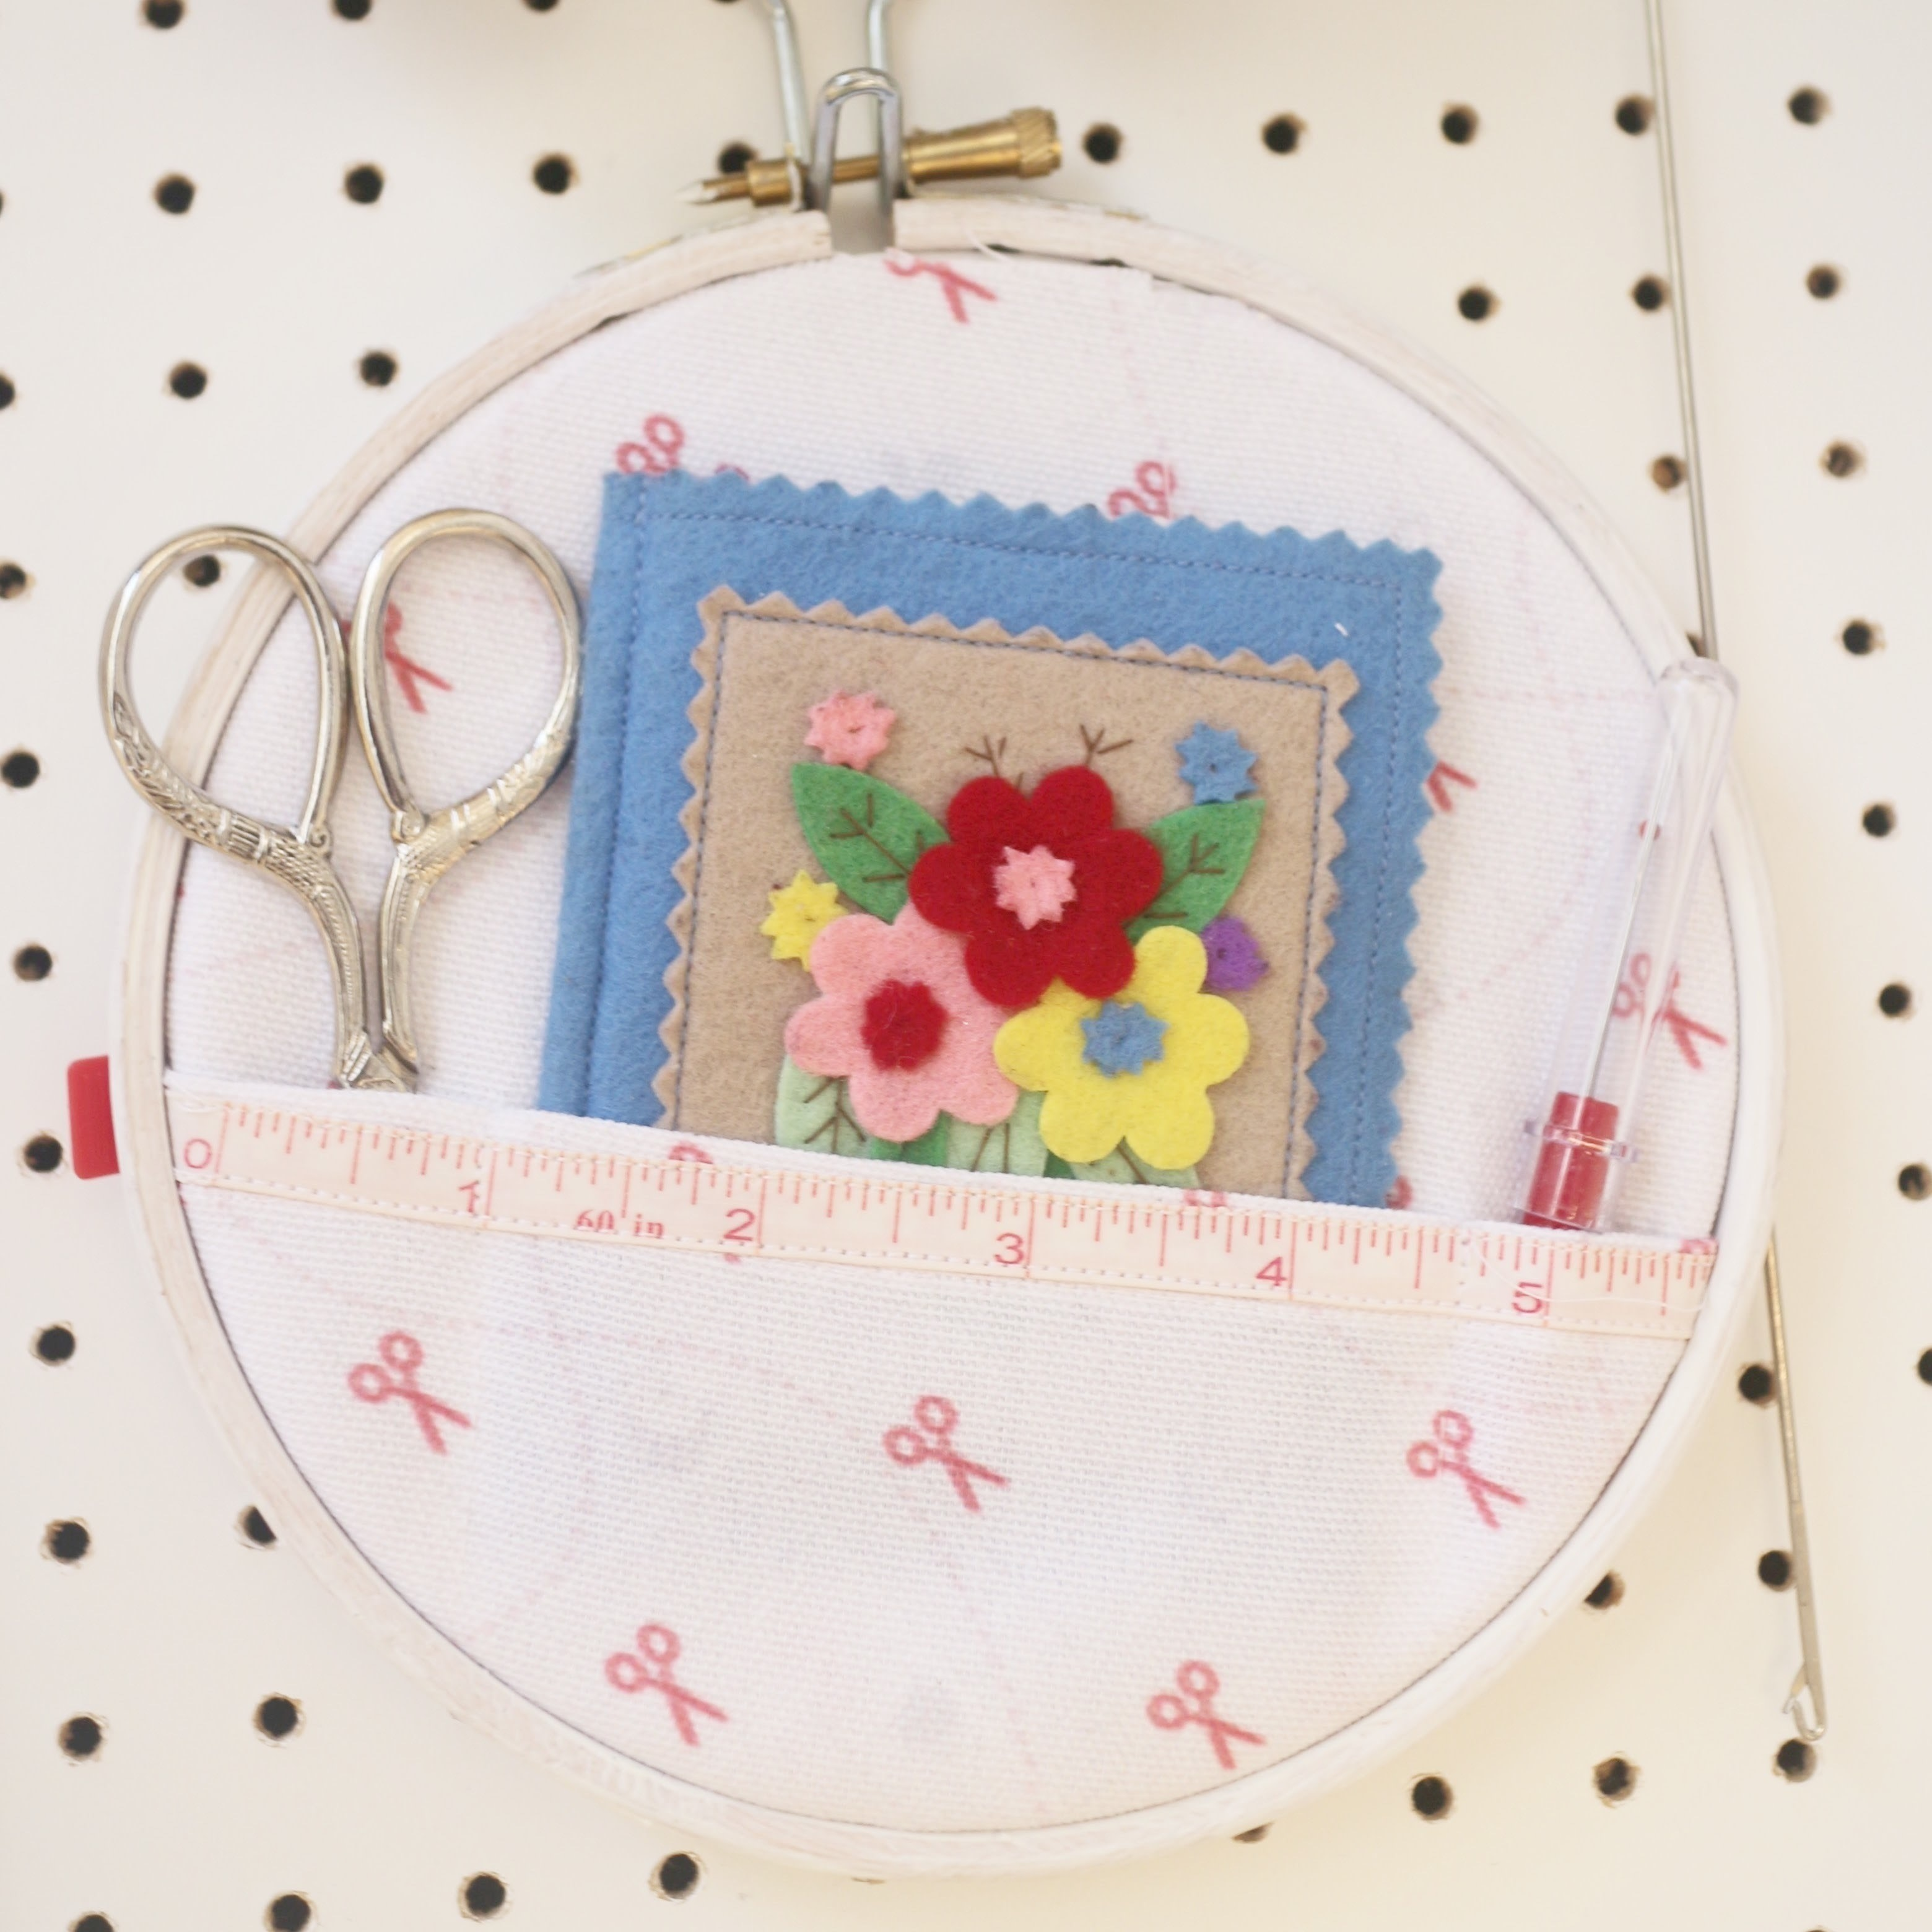 Embroidery Hoop Sewing Kit 183 How To Make A Sewing Kits 183 Sewing On Cut Out Keep